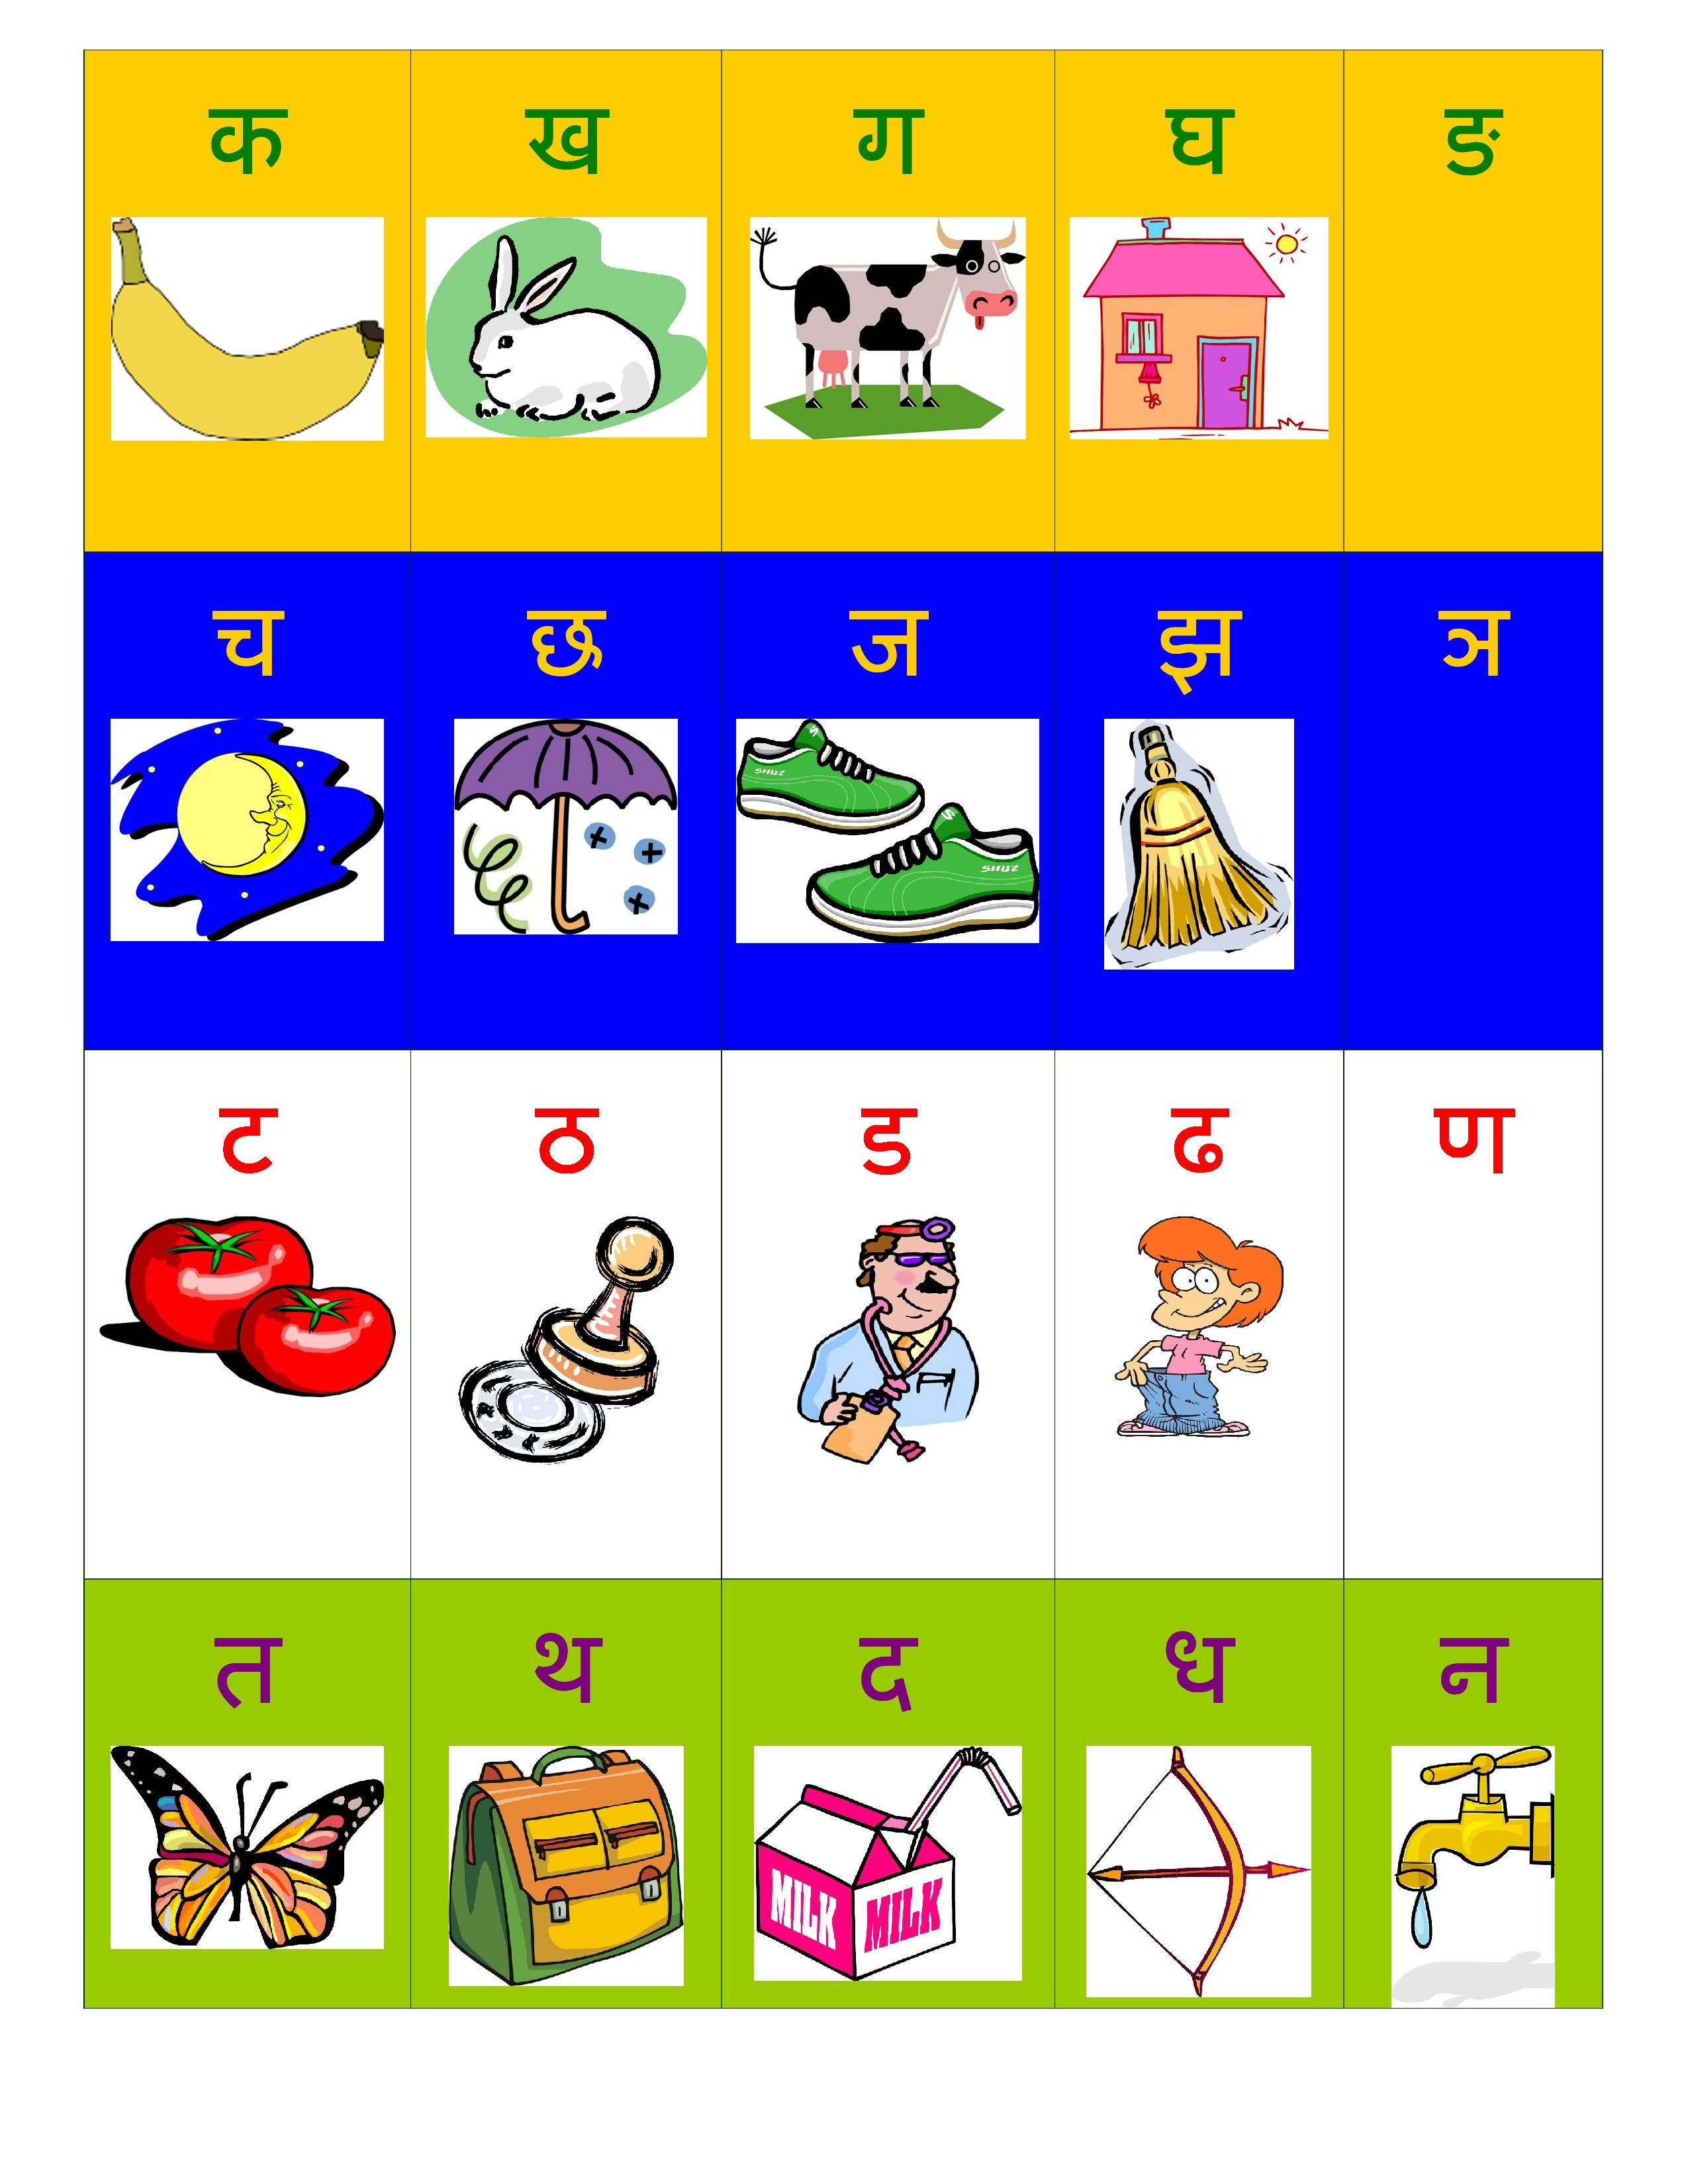 Hindi Alphabet Varnamala Chart Free Print At Home